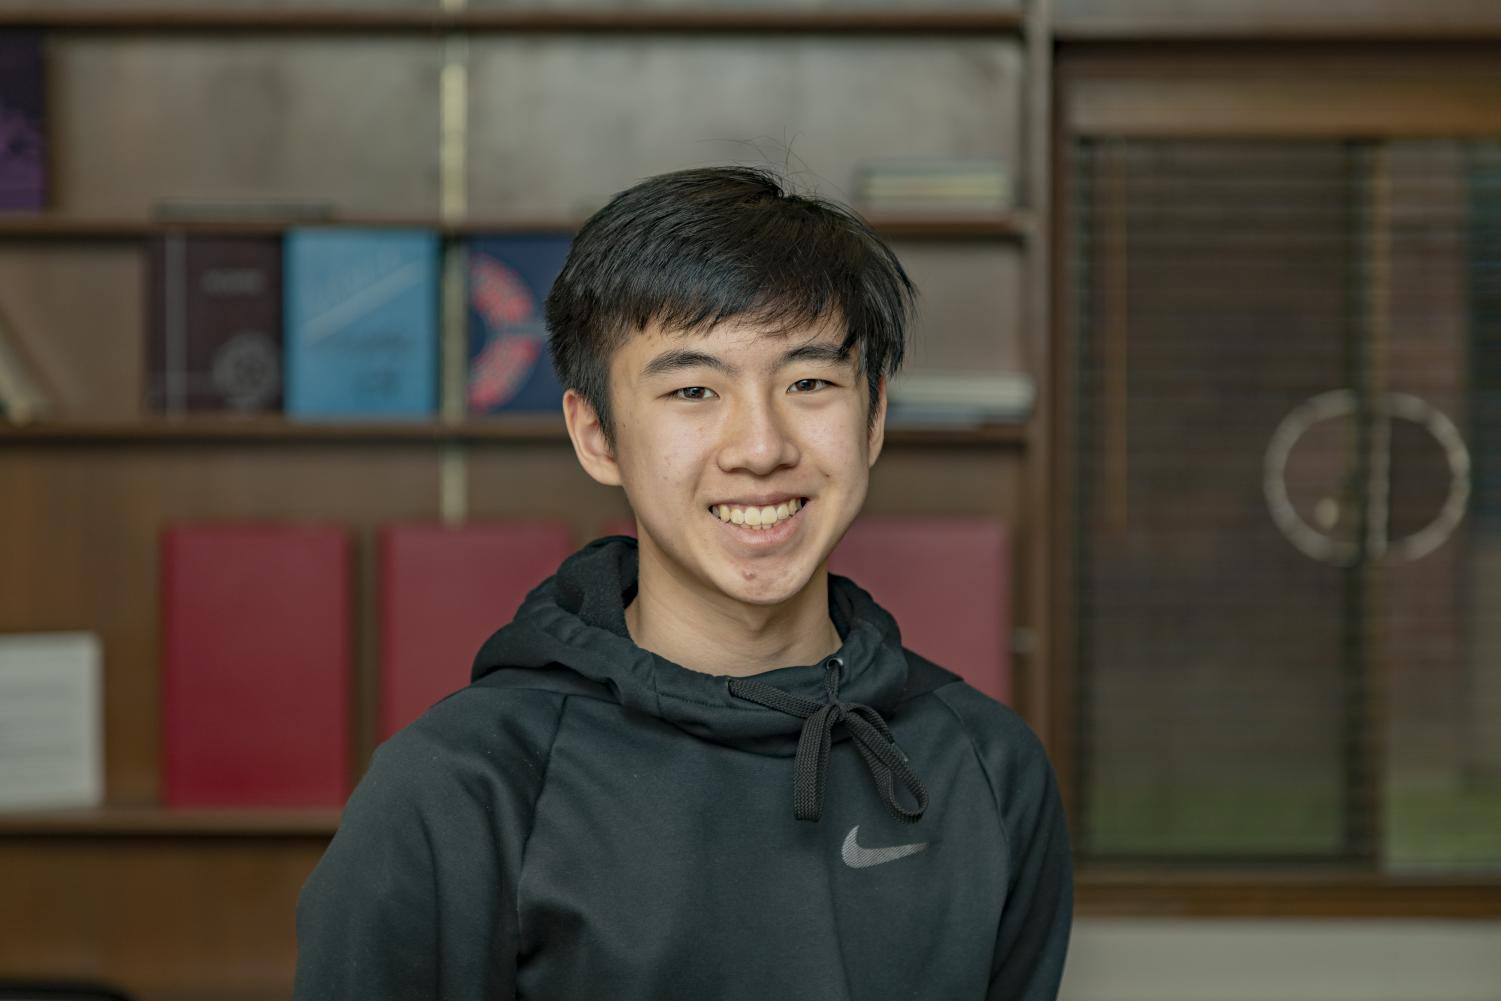 Tyler Pham feels that his teachers were a great support system during his transition into high school.